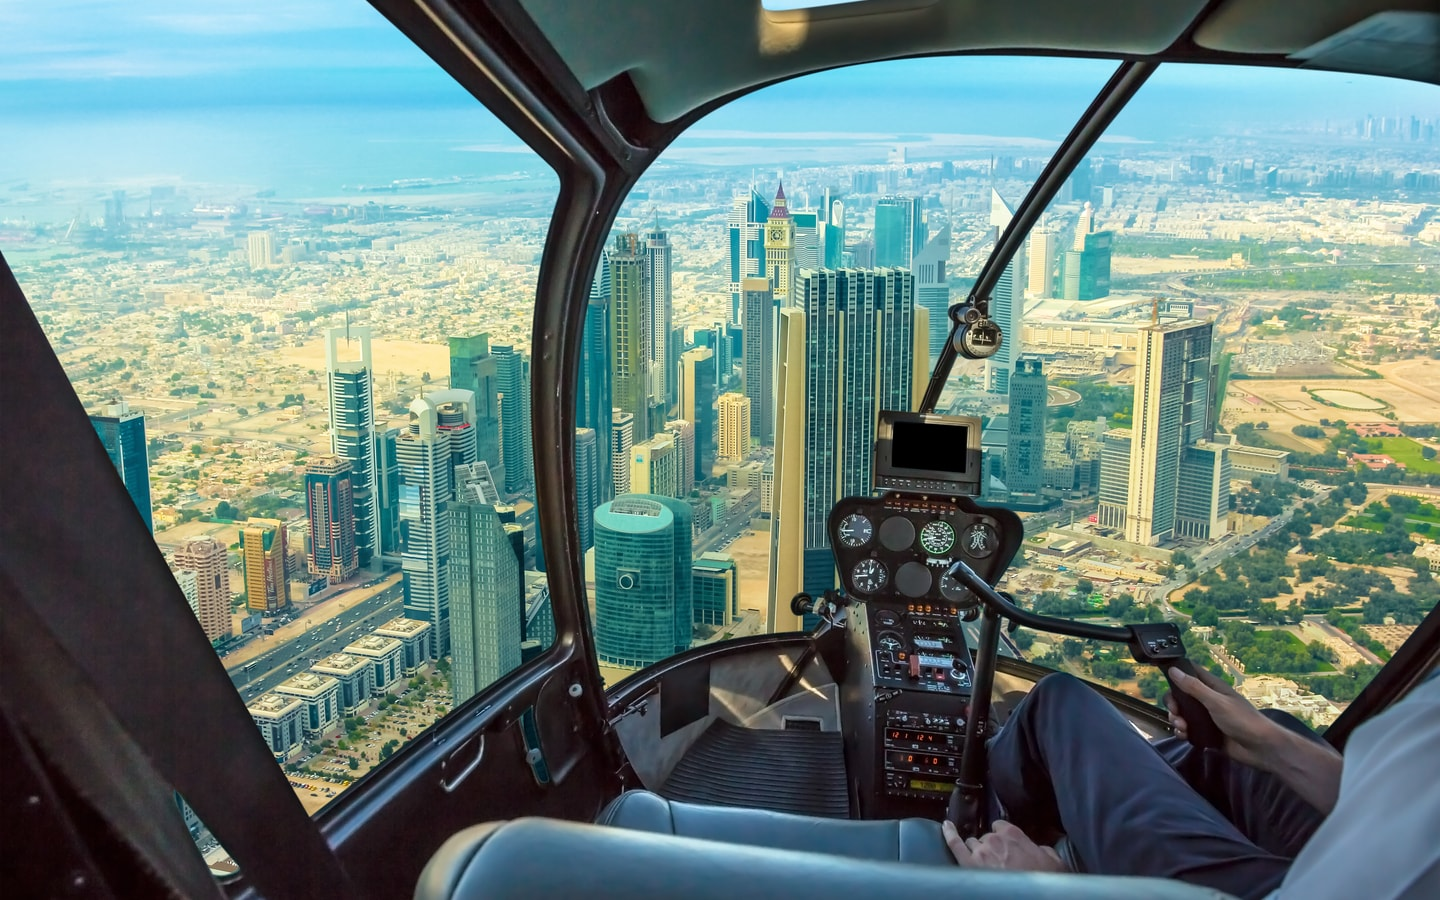 Only in Dubai can you book a helicopter